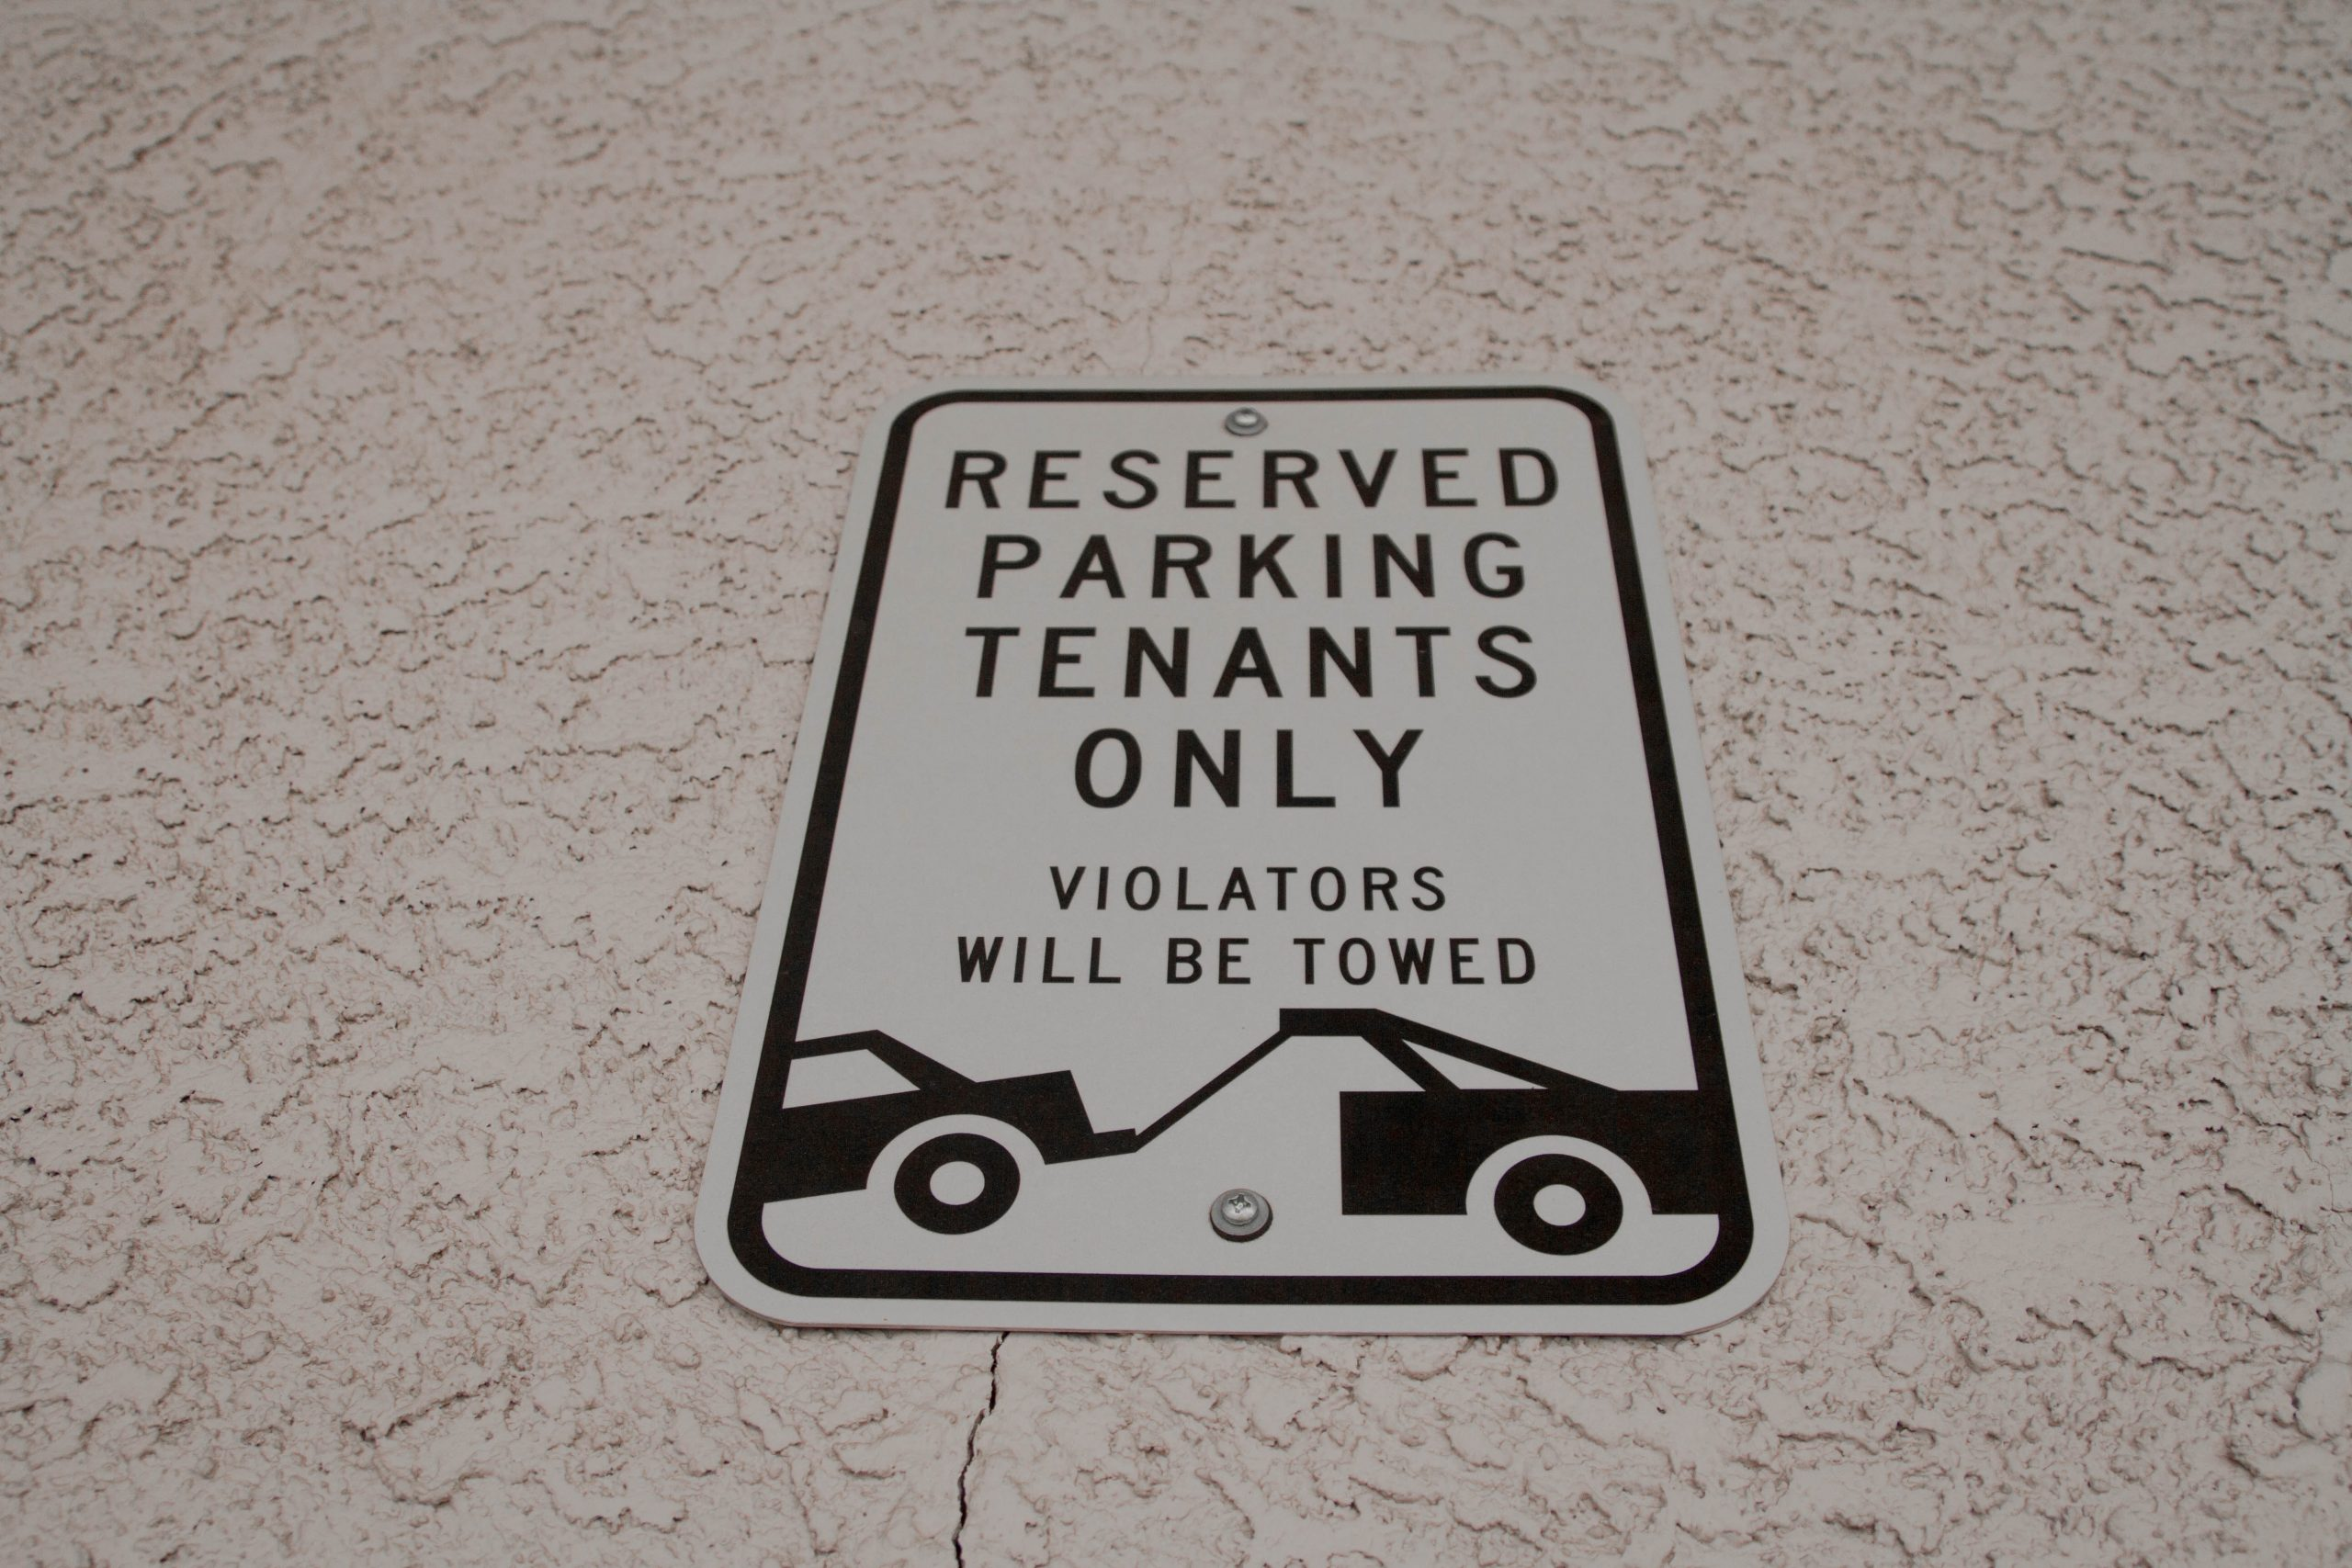 Los Angeles tenant rights when it comes to parking